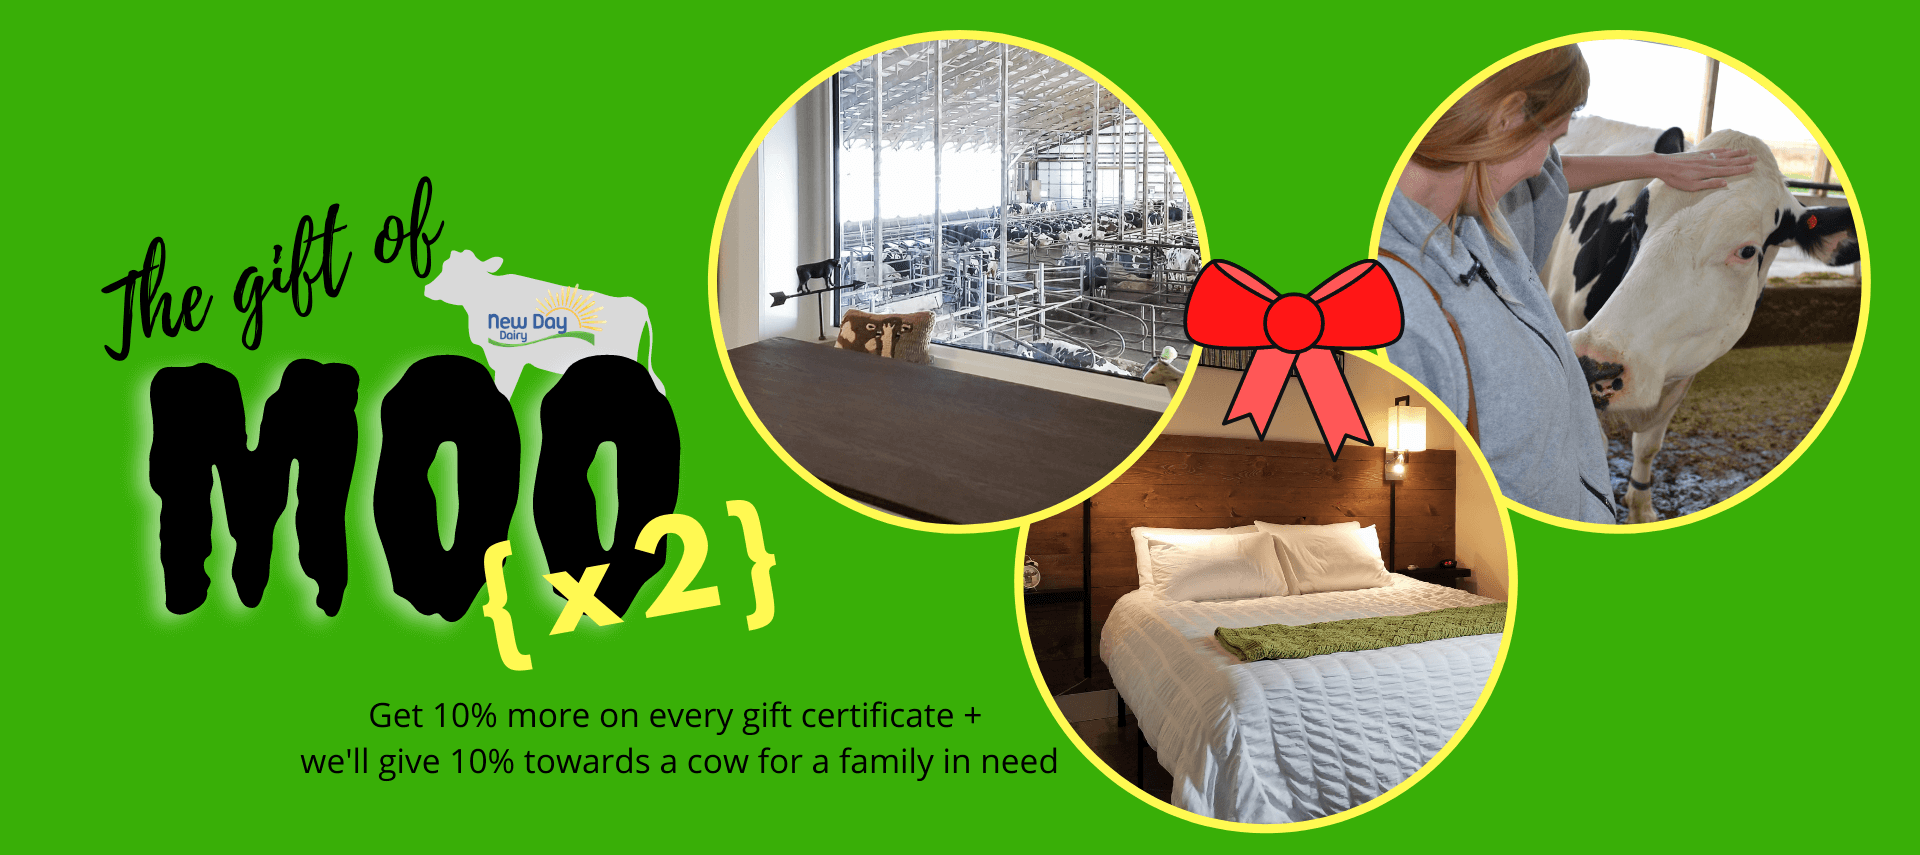 The Gift of Moo Ad with photos of girl petting cow, bedroom, and window looking into a barn.